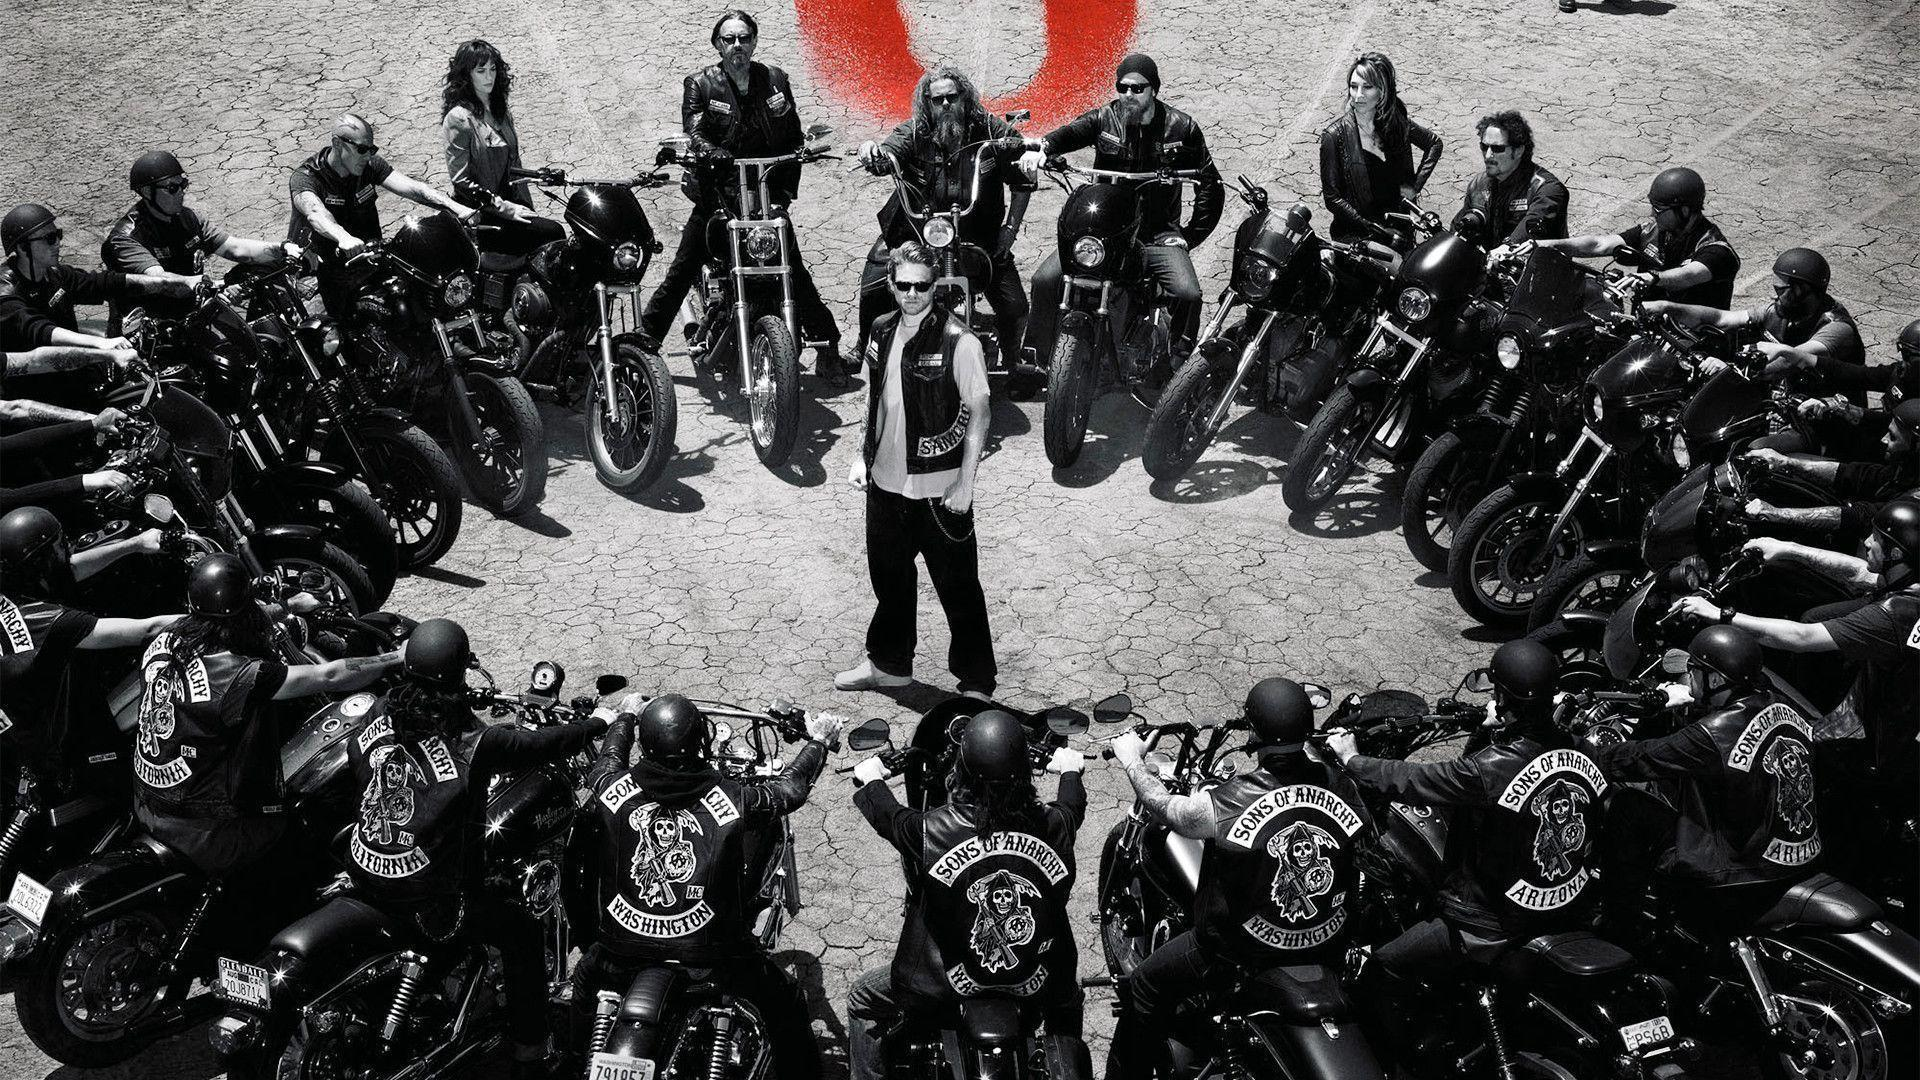 sons of anarchy wallpapers wallpaper cave. Black Bedroom Furniture Sets. Home Design Ideas